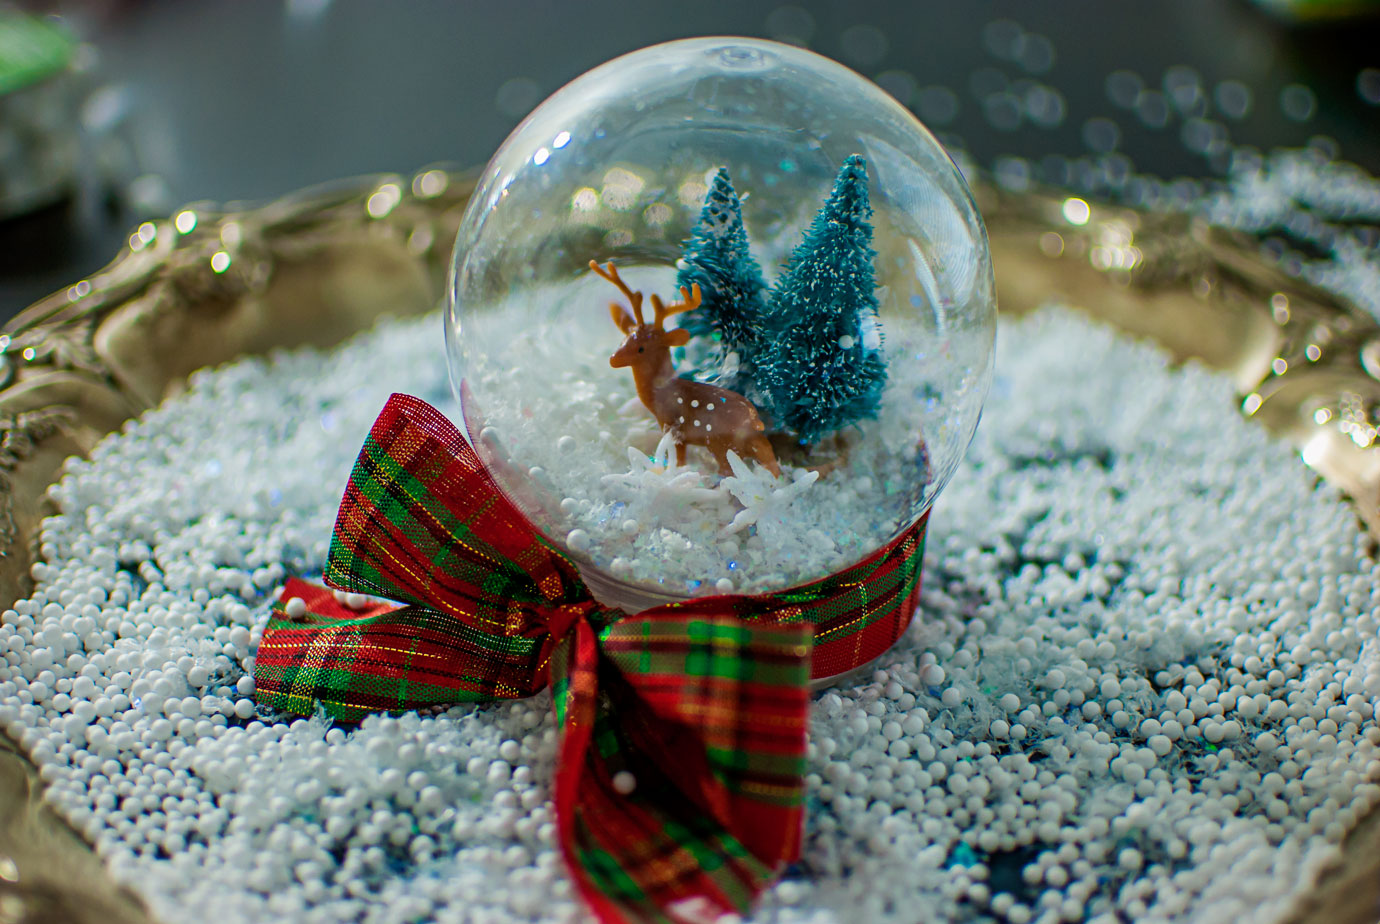 White Christmas Inspired Snow Globe DIY A Kid Friendly Holiday Craft #ChristmasMoviesHop #SnowGlobe